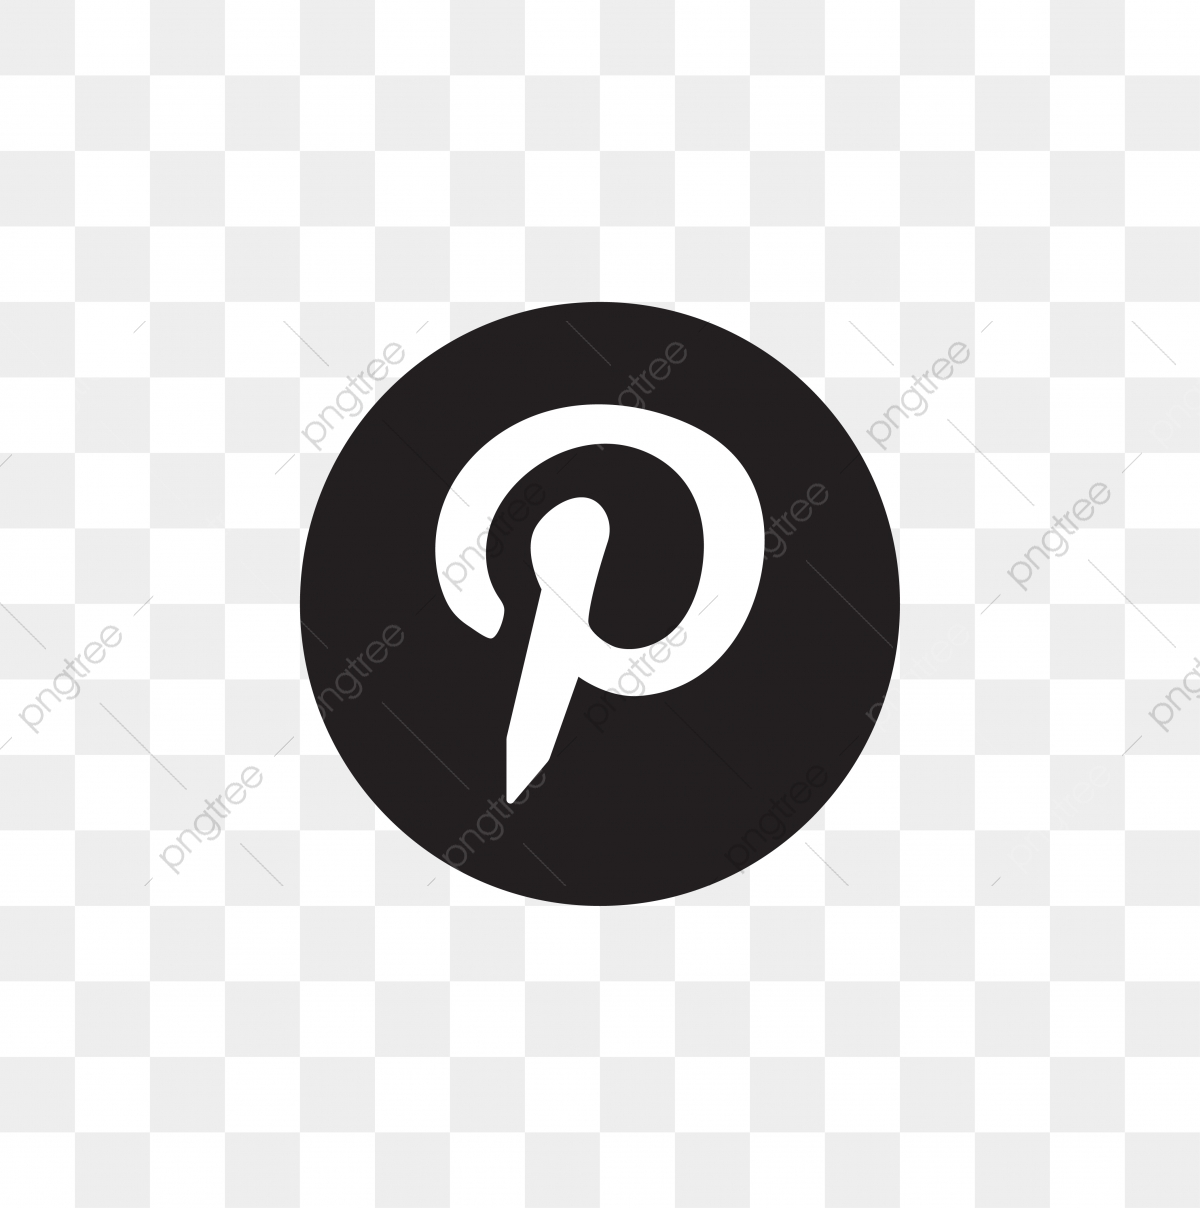 pinterest logo vector free download